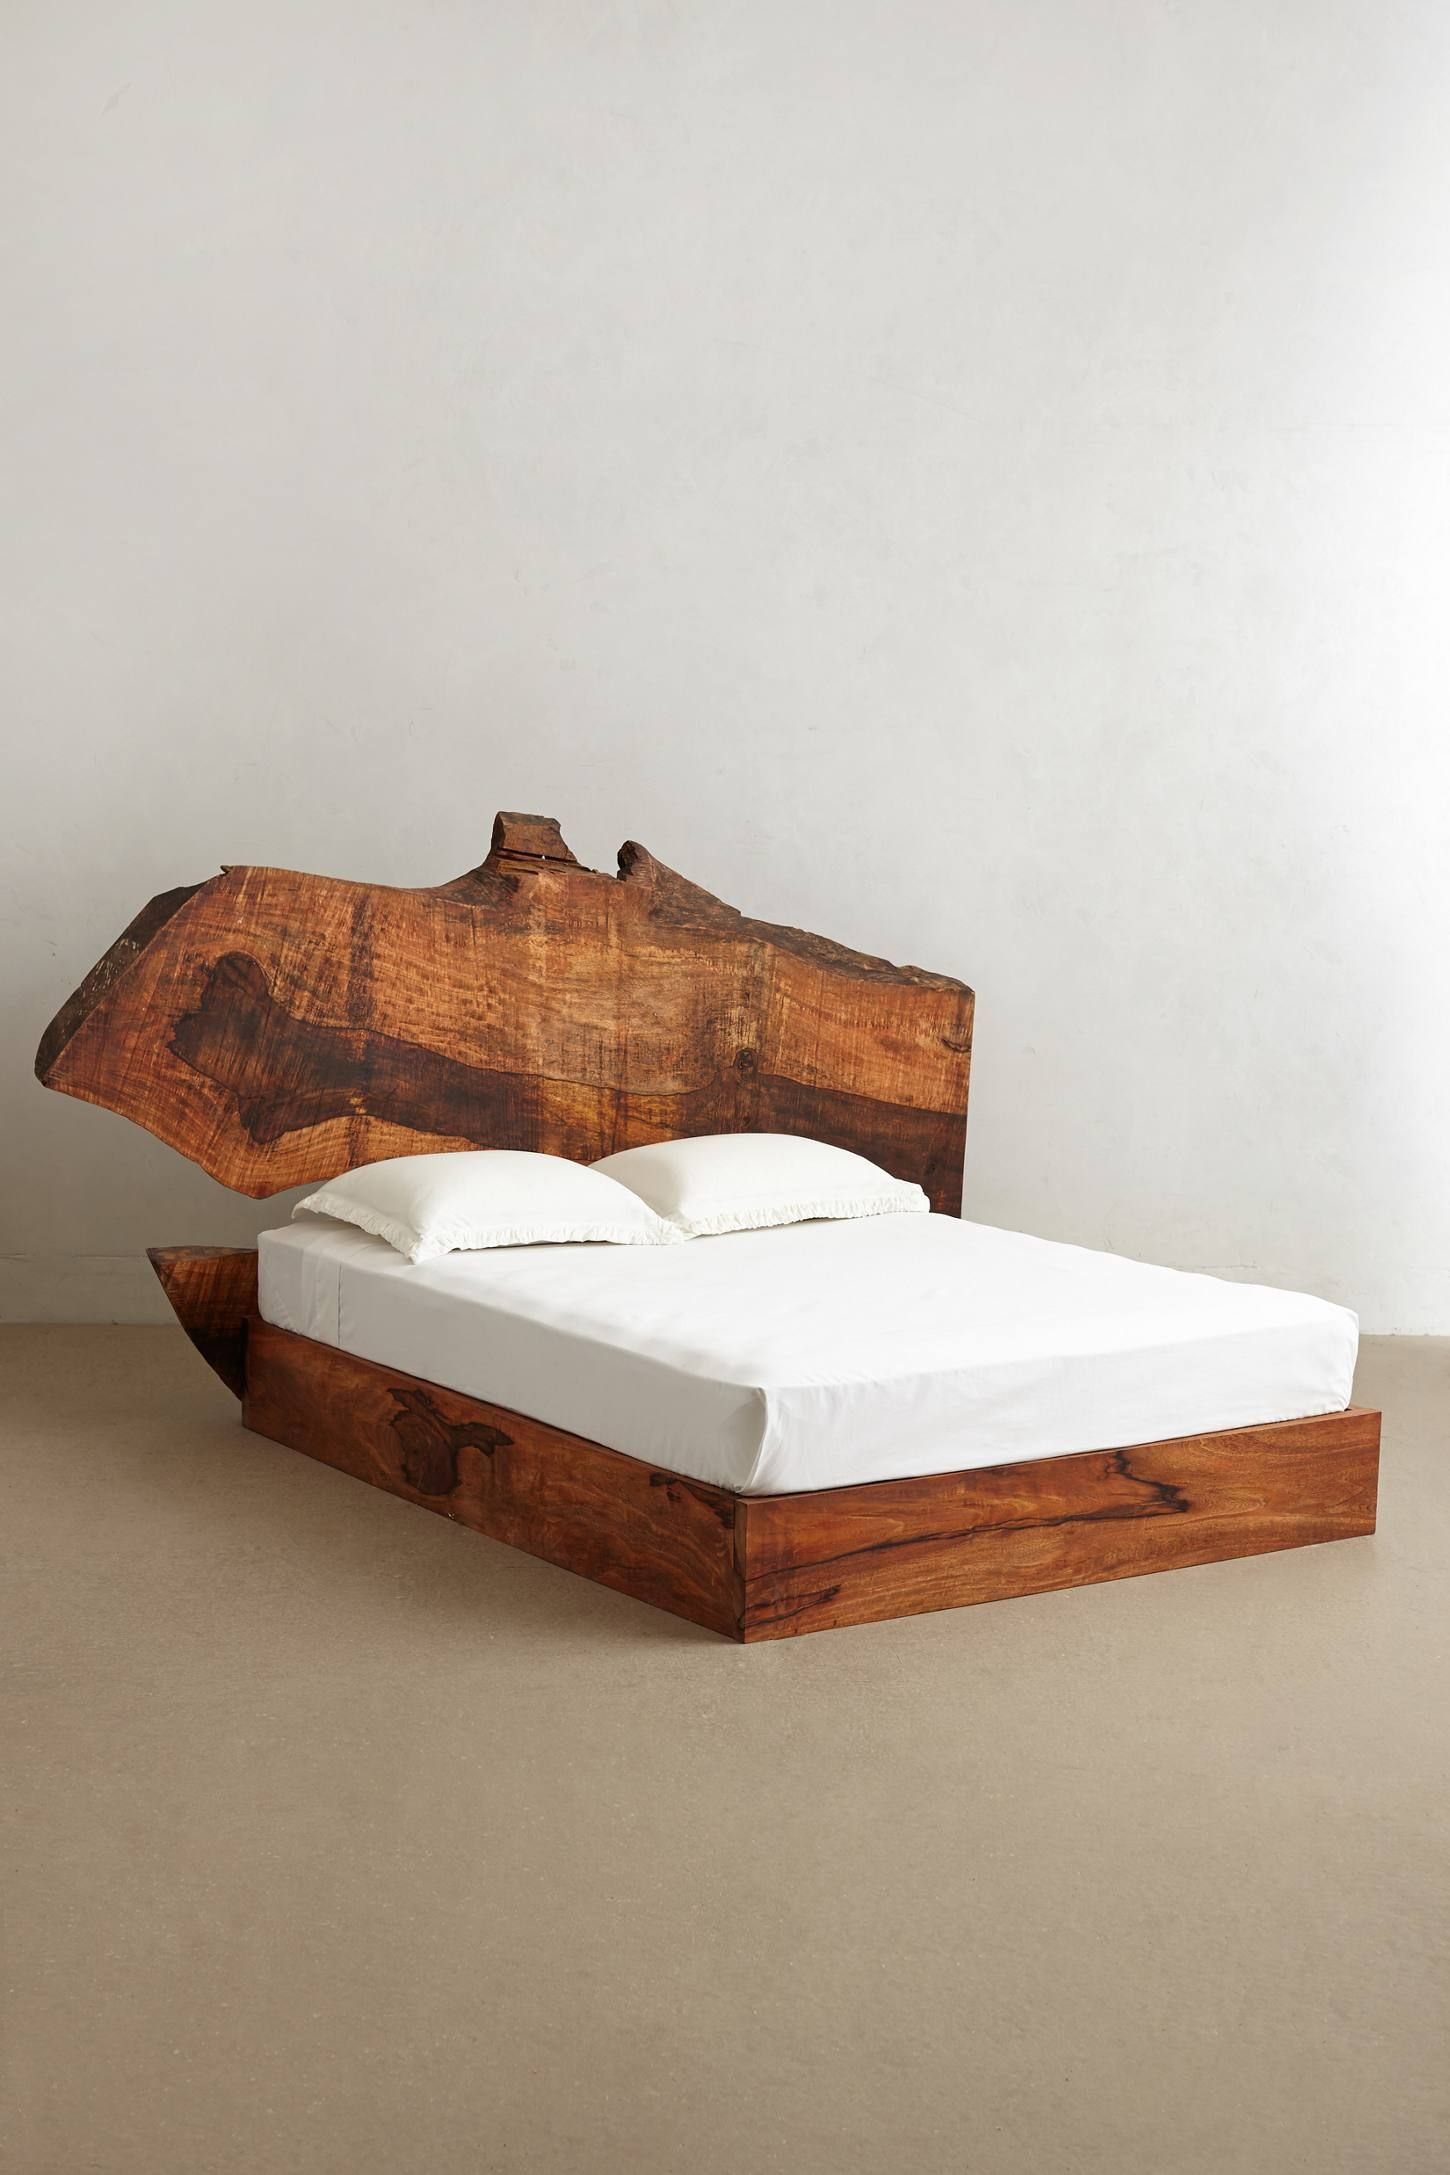 Teakwood Bed | Objects of Affection | Pinterest | Madera, Camas y ...